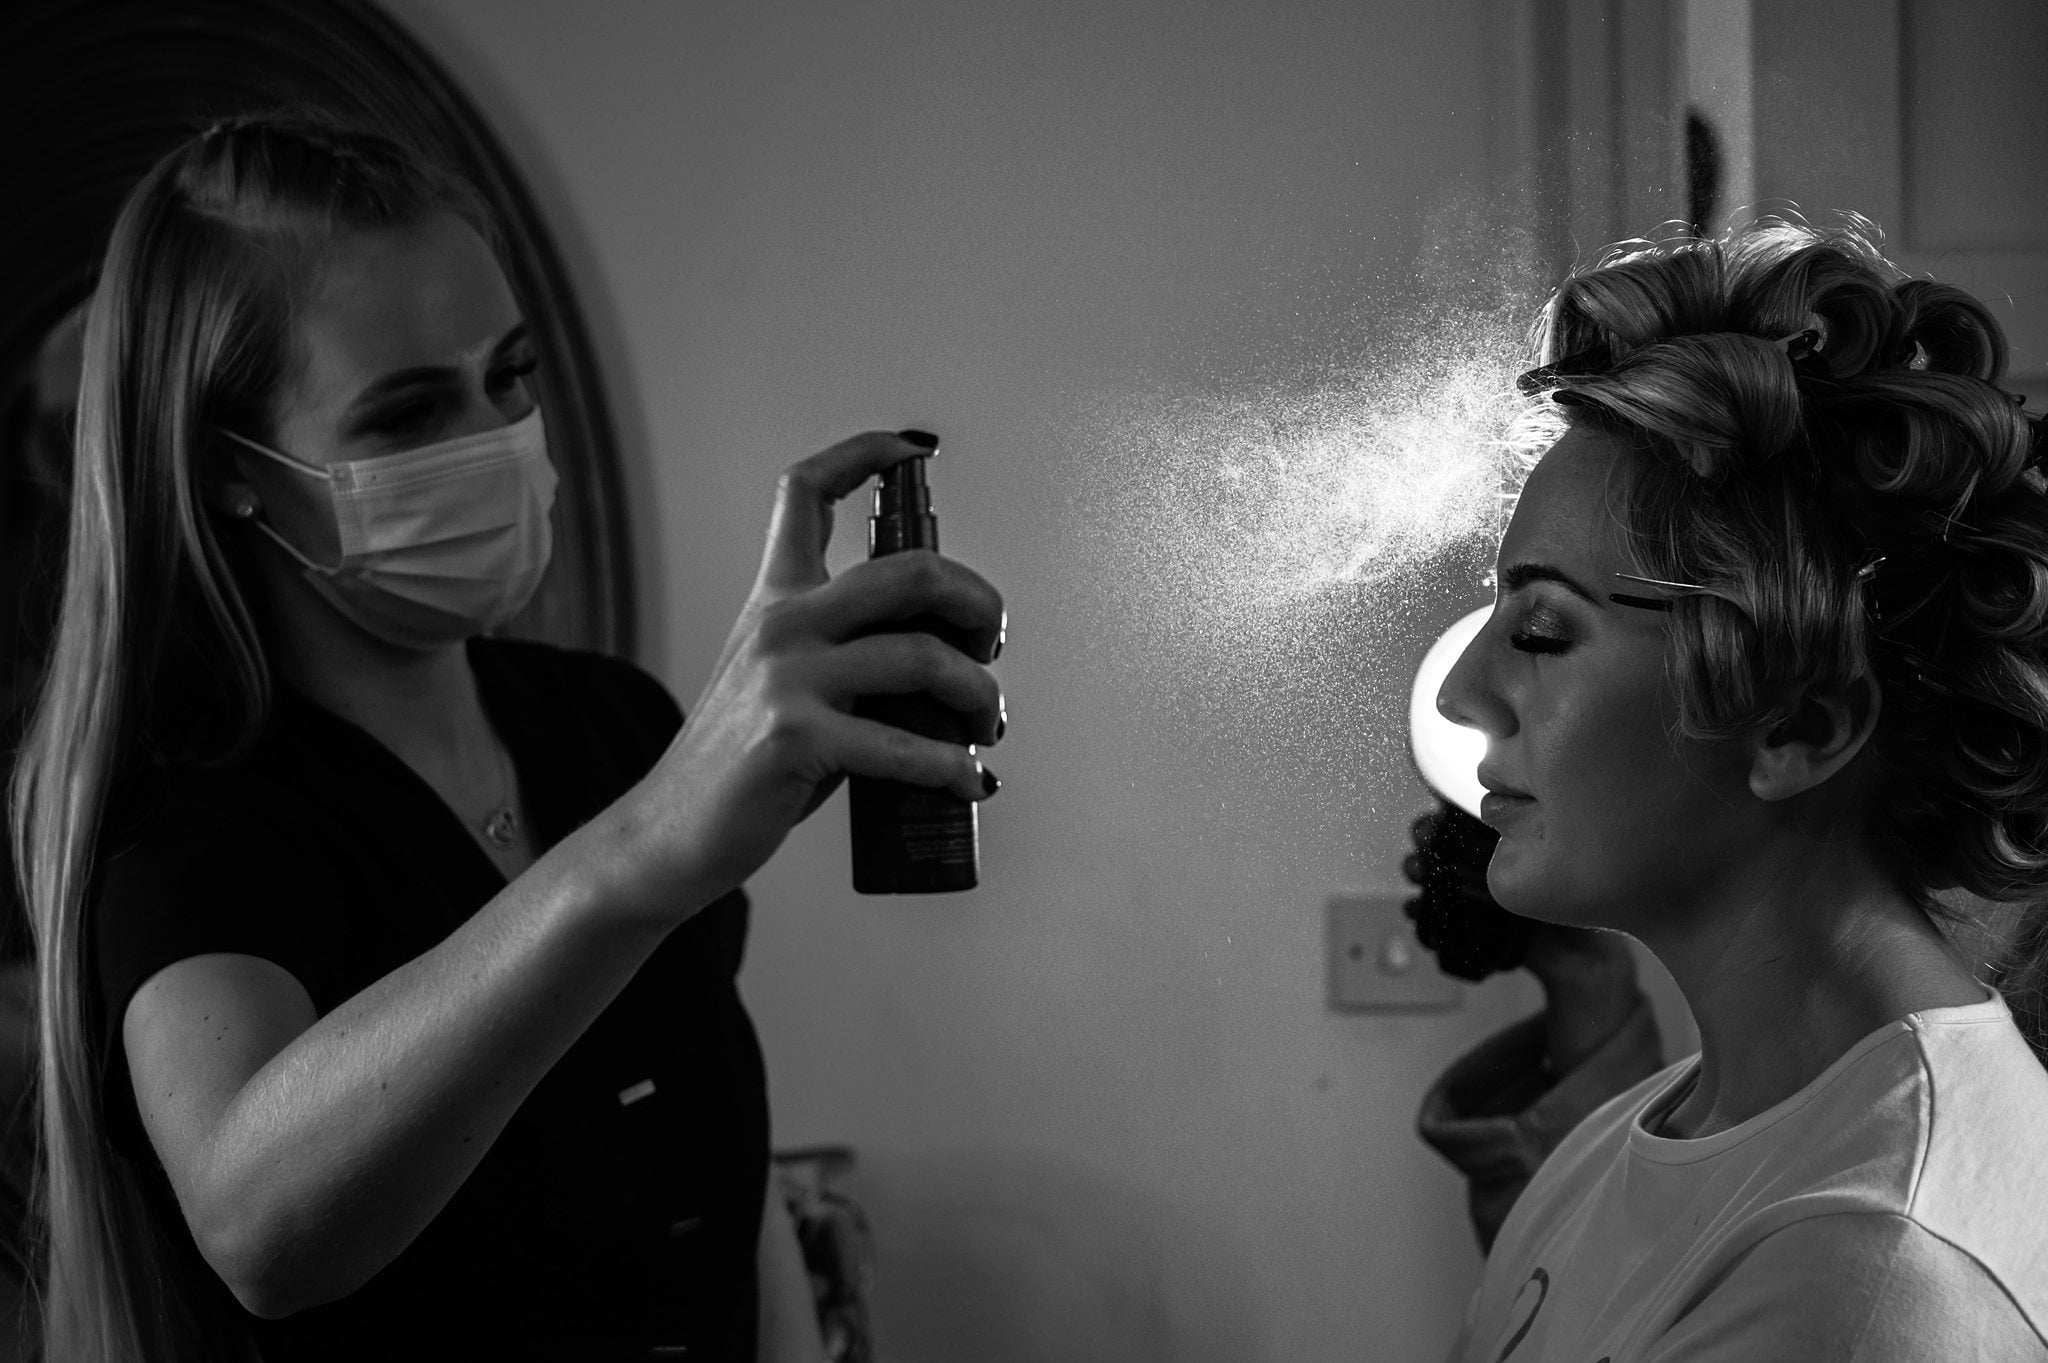 This image shows a flash photography image of a bride getting her hair sprayed light from behind